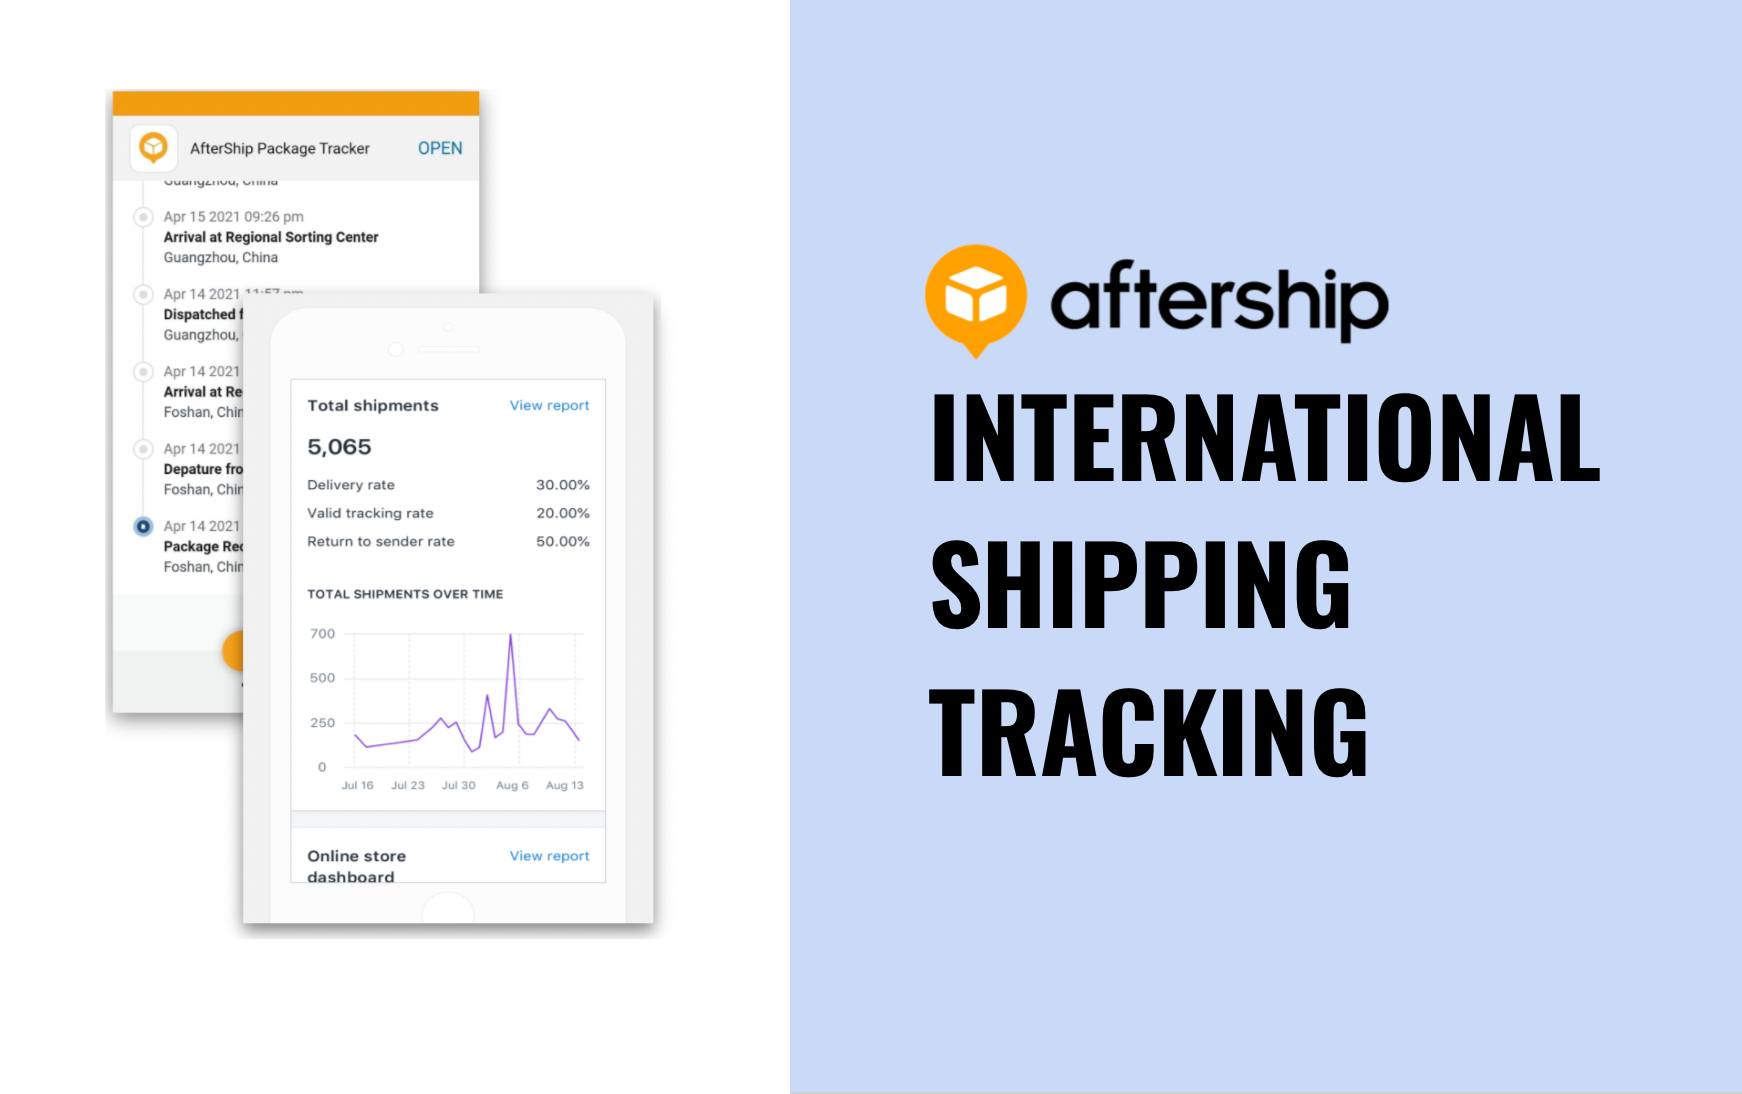 International Shipping Tracking: Everything You Need to Know